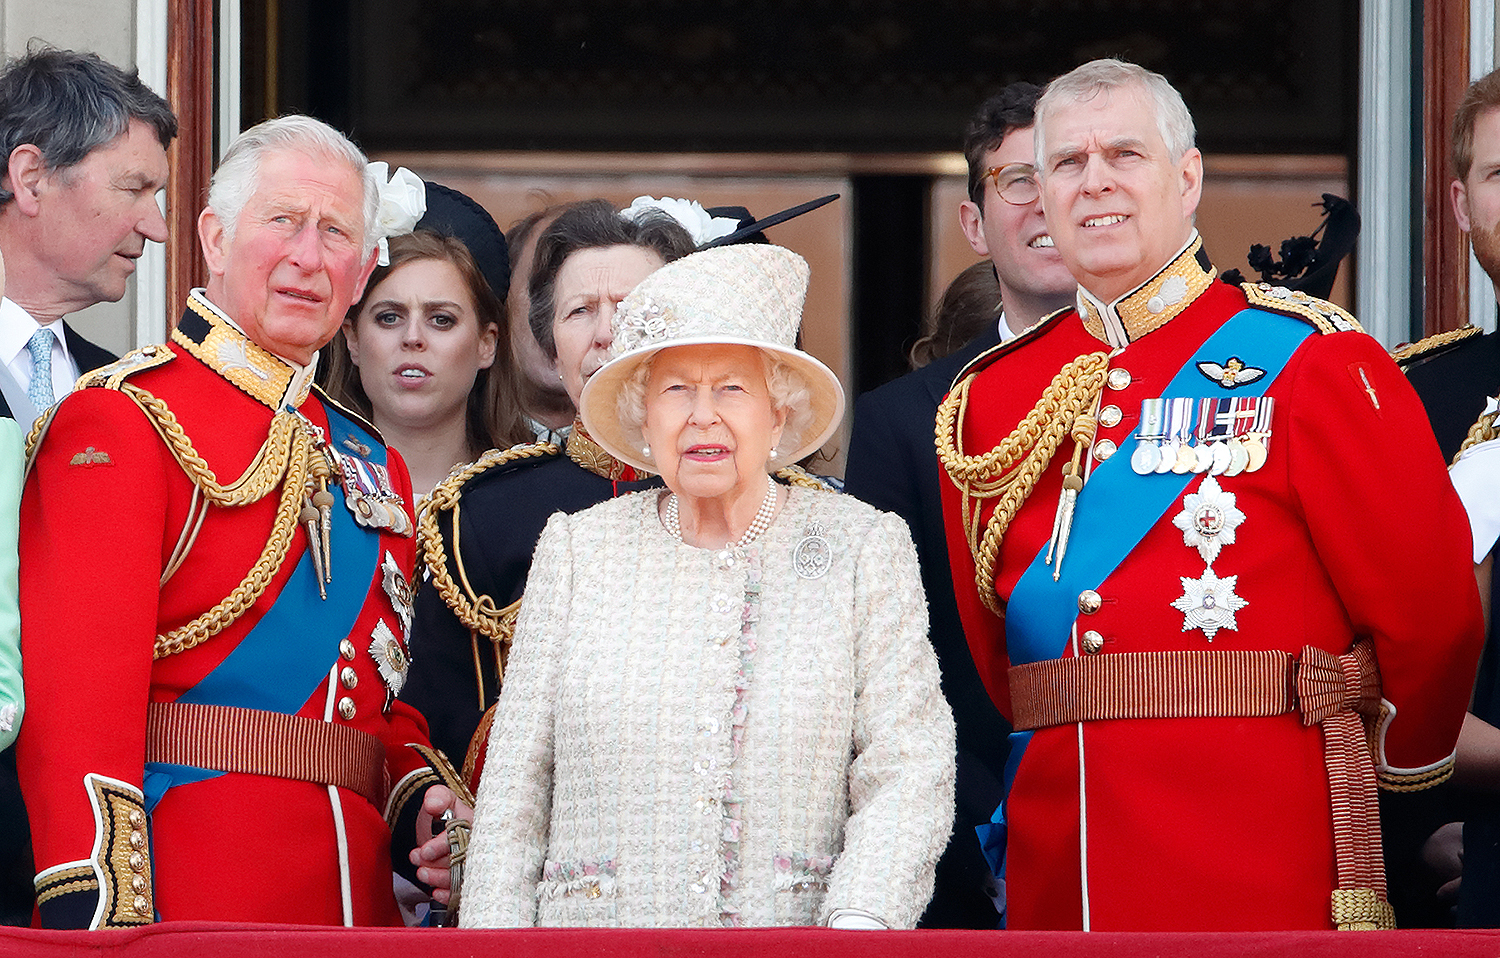 Prince Charles, Prince of Wales, Queen Elizabeth II and Prince Andrew, Duke of York